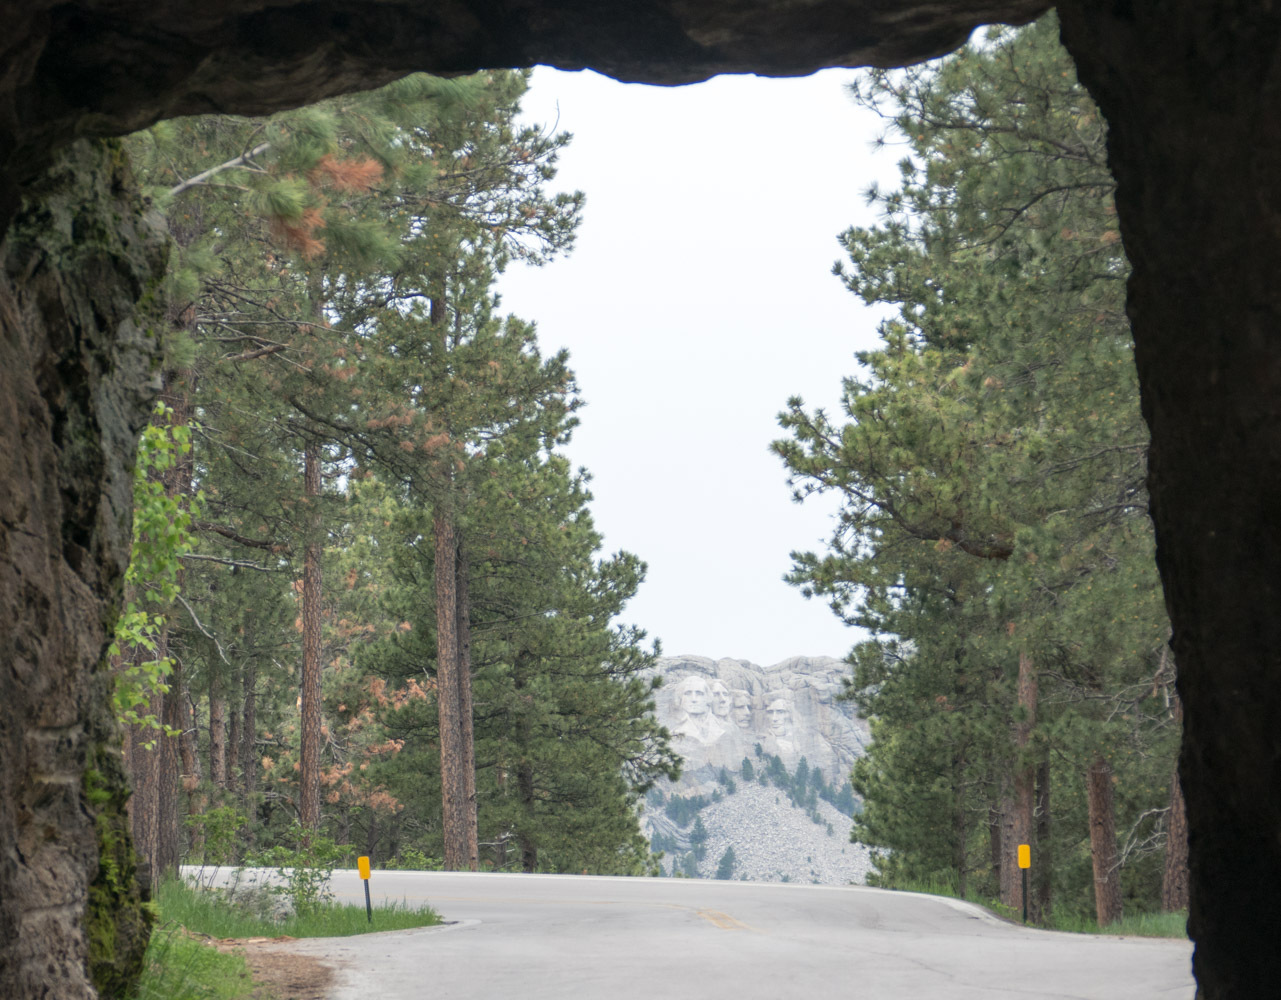 A tunnel on the Iron Mountain Road which frames Mt. Rushmore.